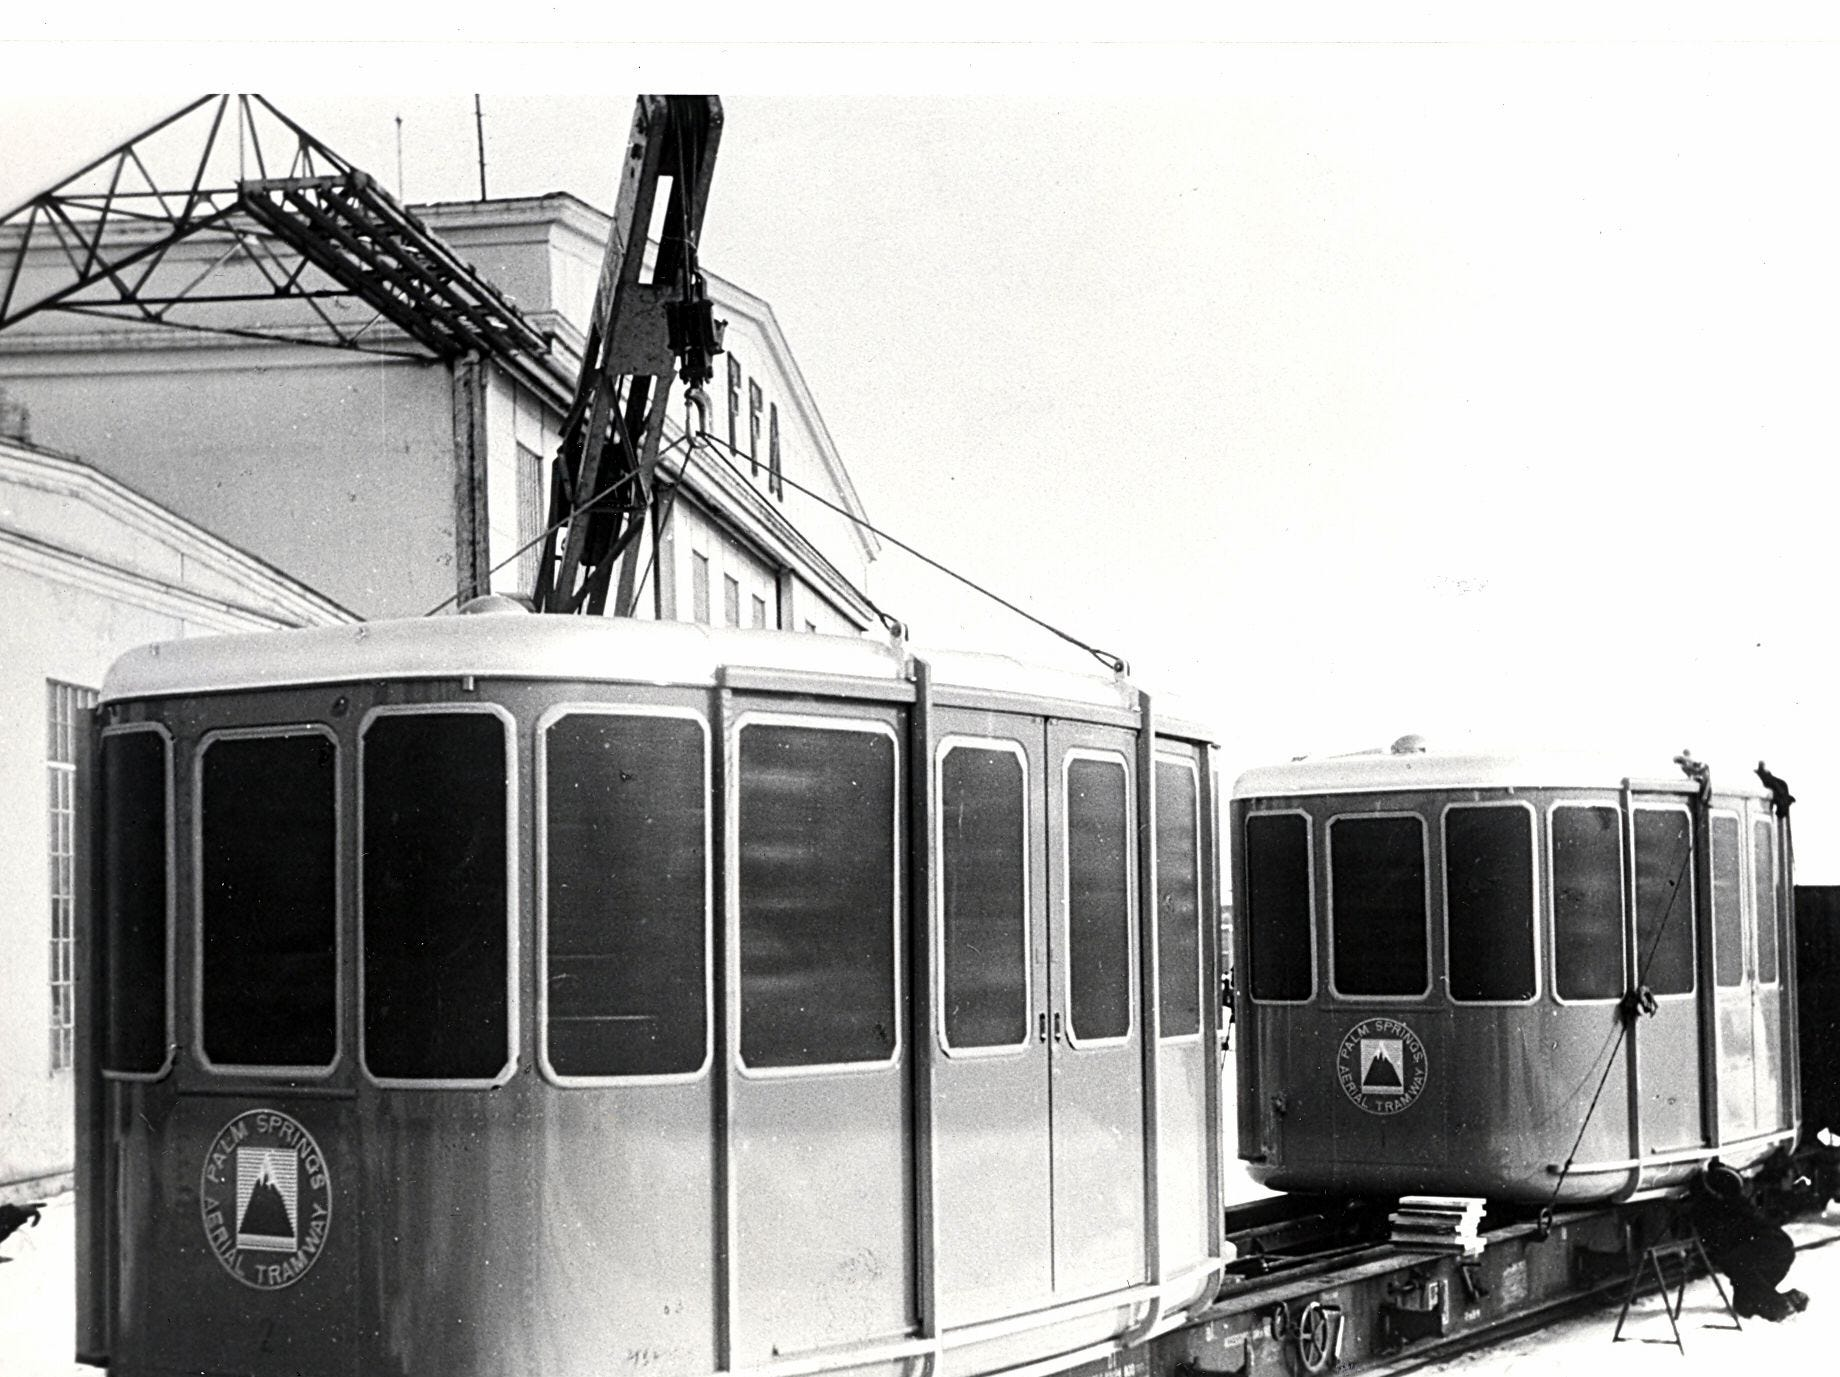 This undated photo shows two new tram cars arrive at the Palm Springs Aerial Tramway during its early days.